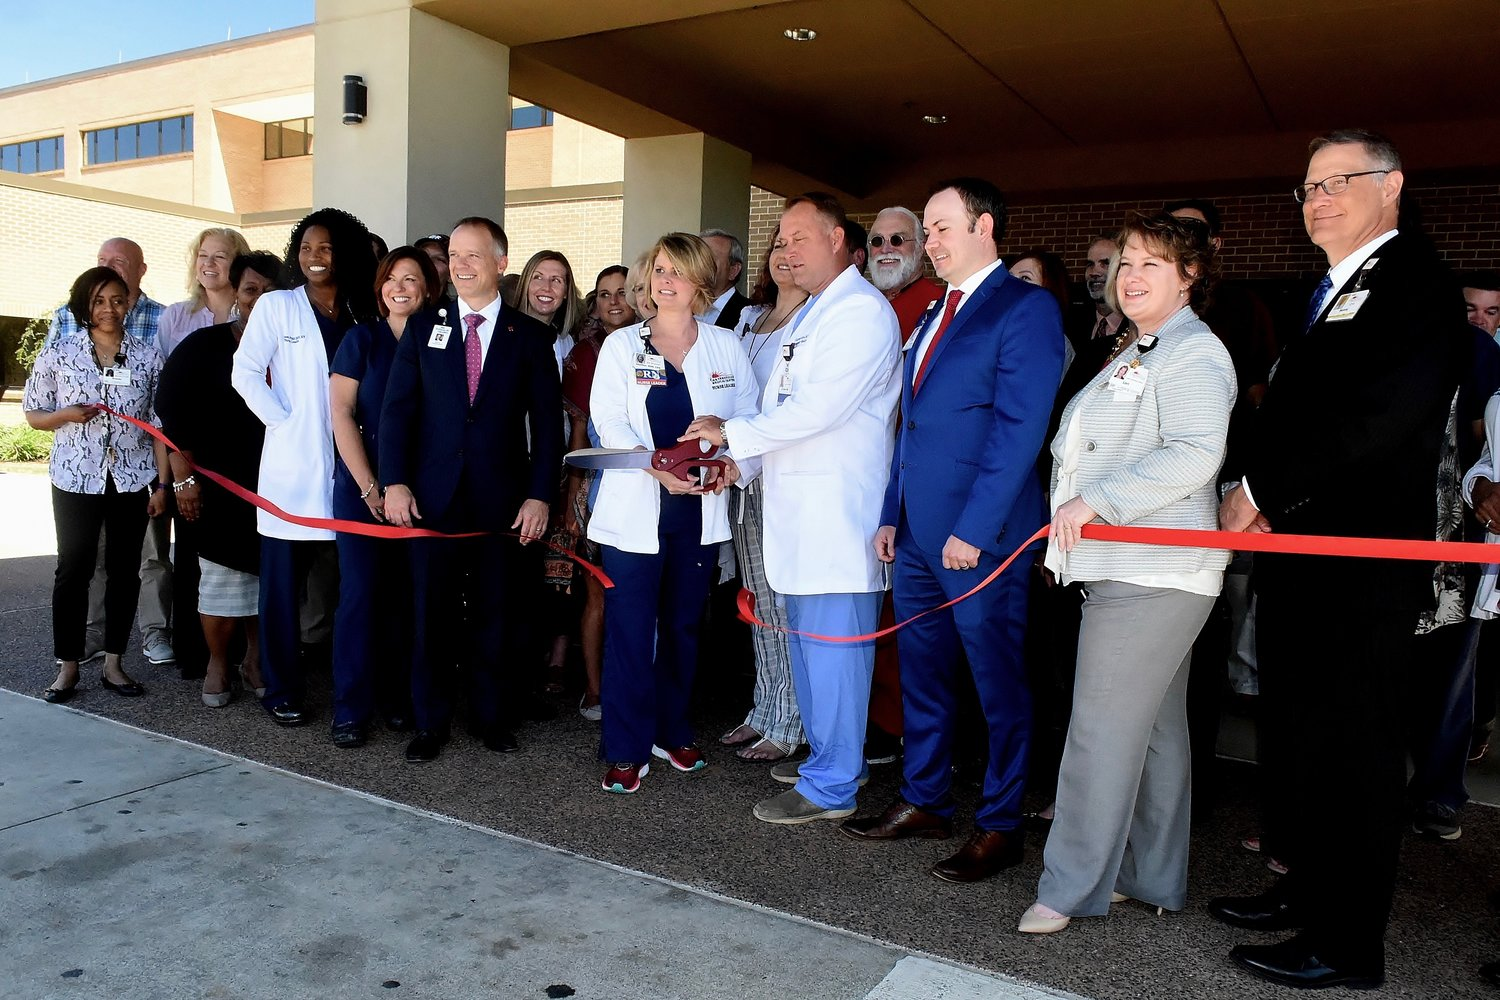 Cartersville Medical Center celebrated the completion of its $14 million emergency department expansion project with a ribbon-cutting ceremony on Thursday.